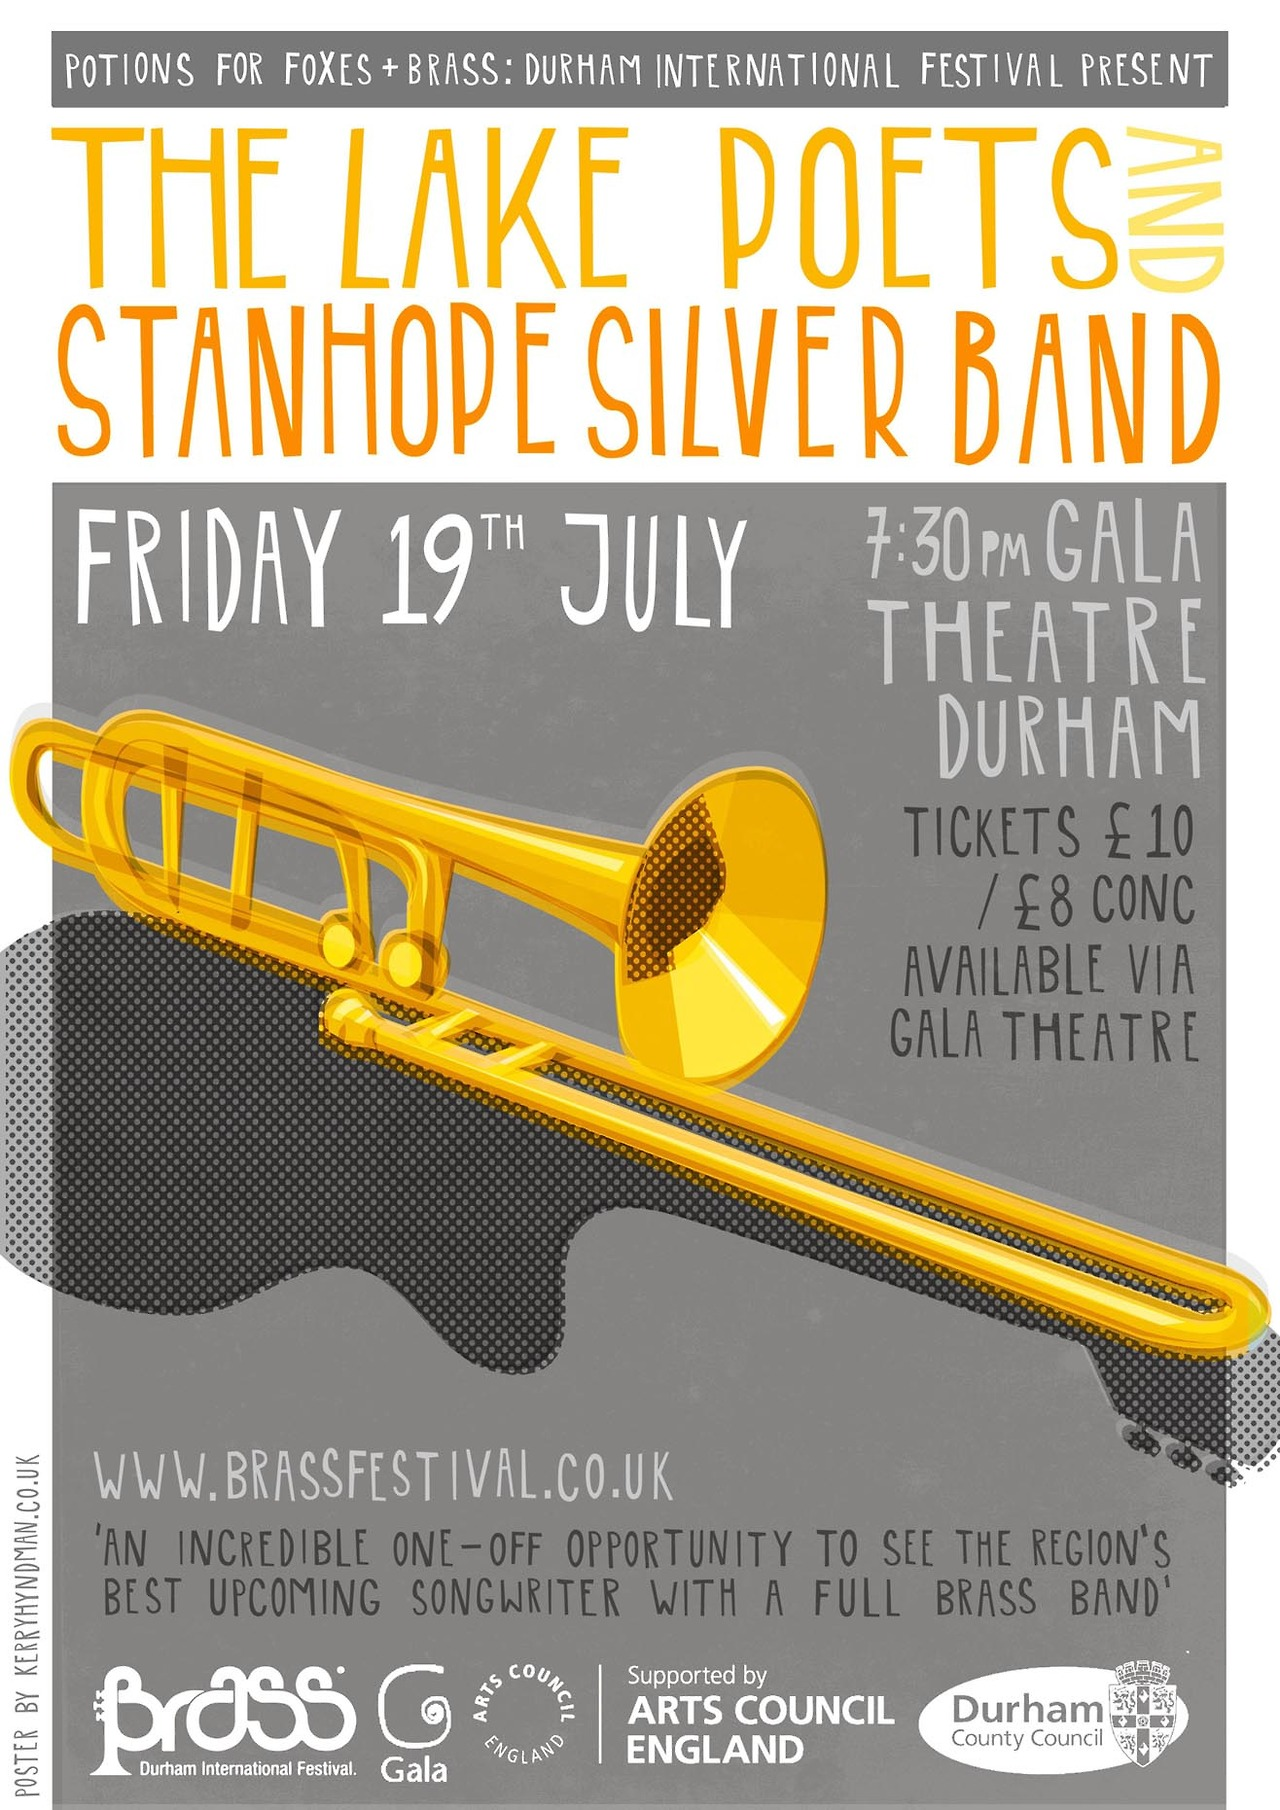 Here's a new poster for The Lake Poets and The  Stanhope   Silver band. They're performing together as part of  Durham Brass festival . Find out more  here . Should be a good 'un - can't beat a lovely bit of brass!